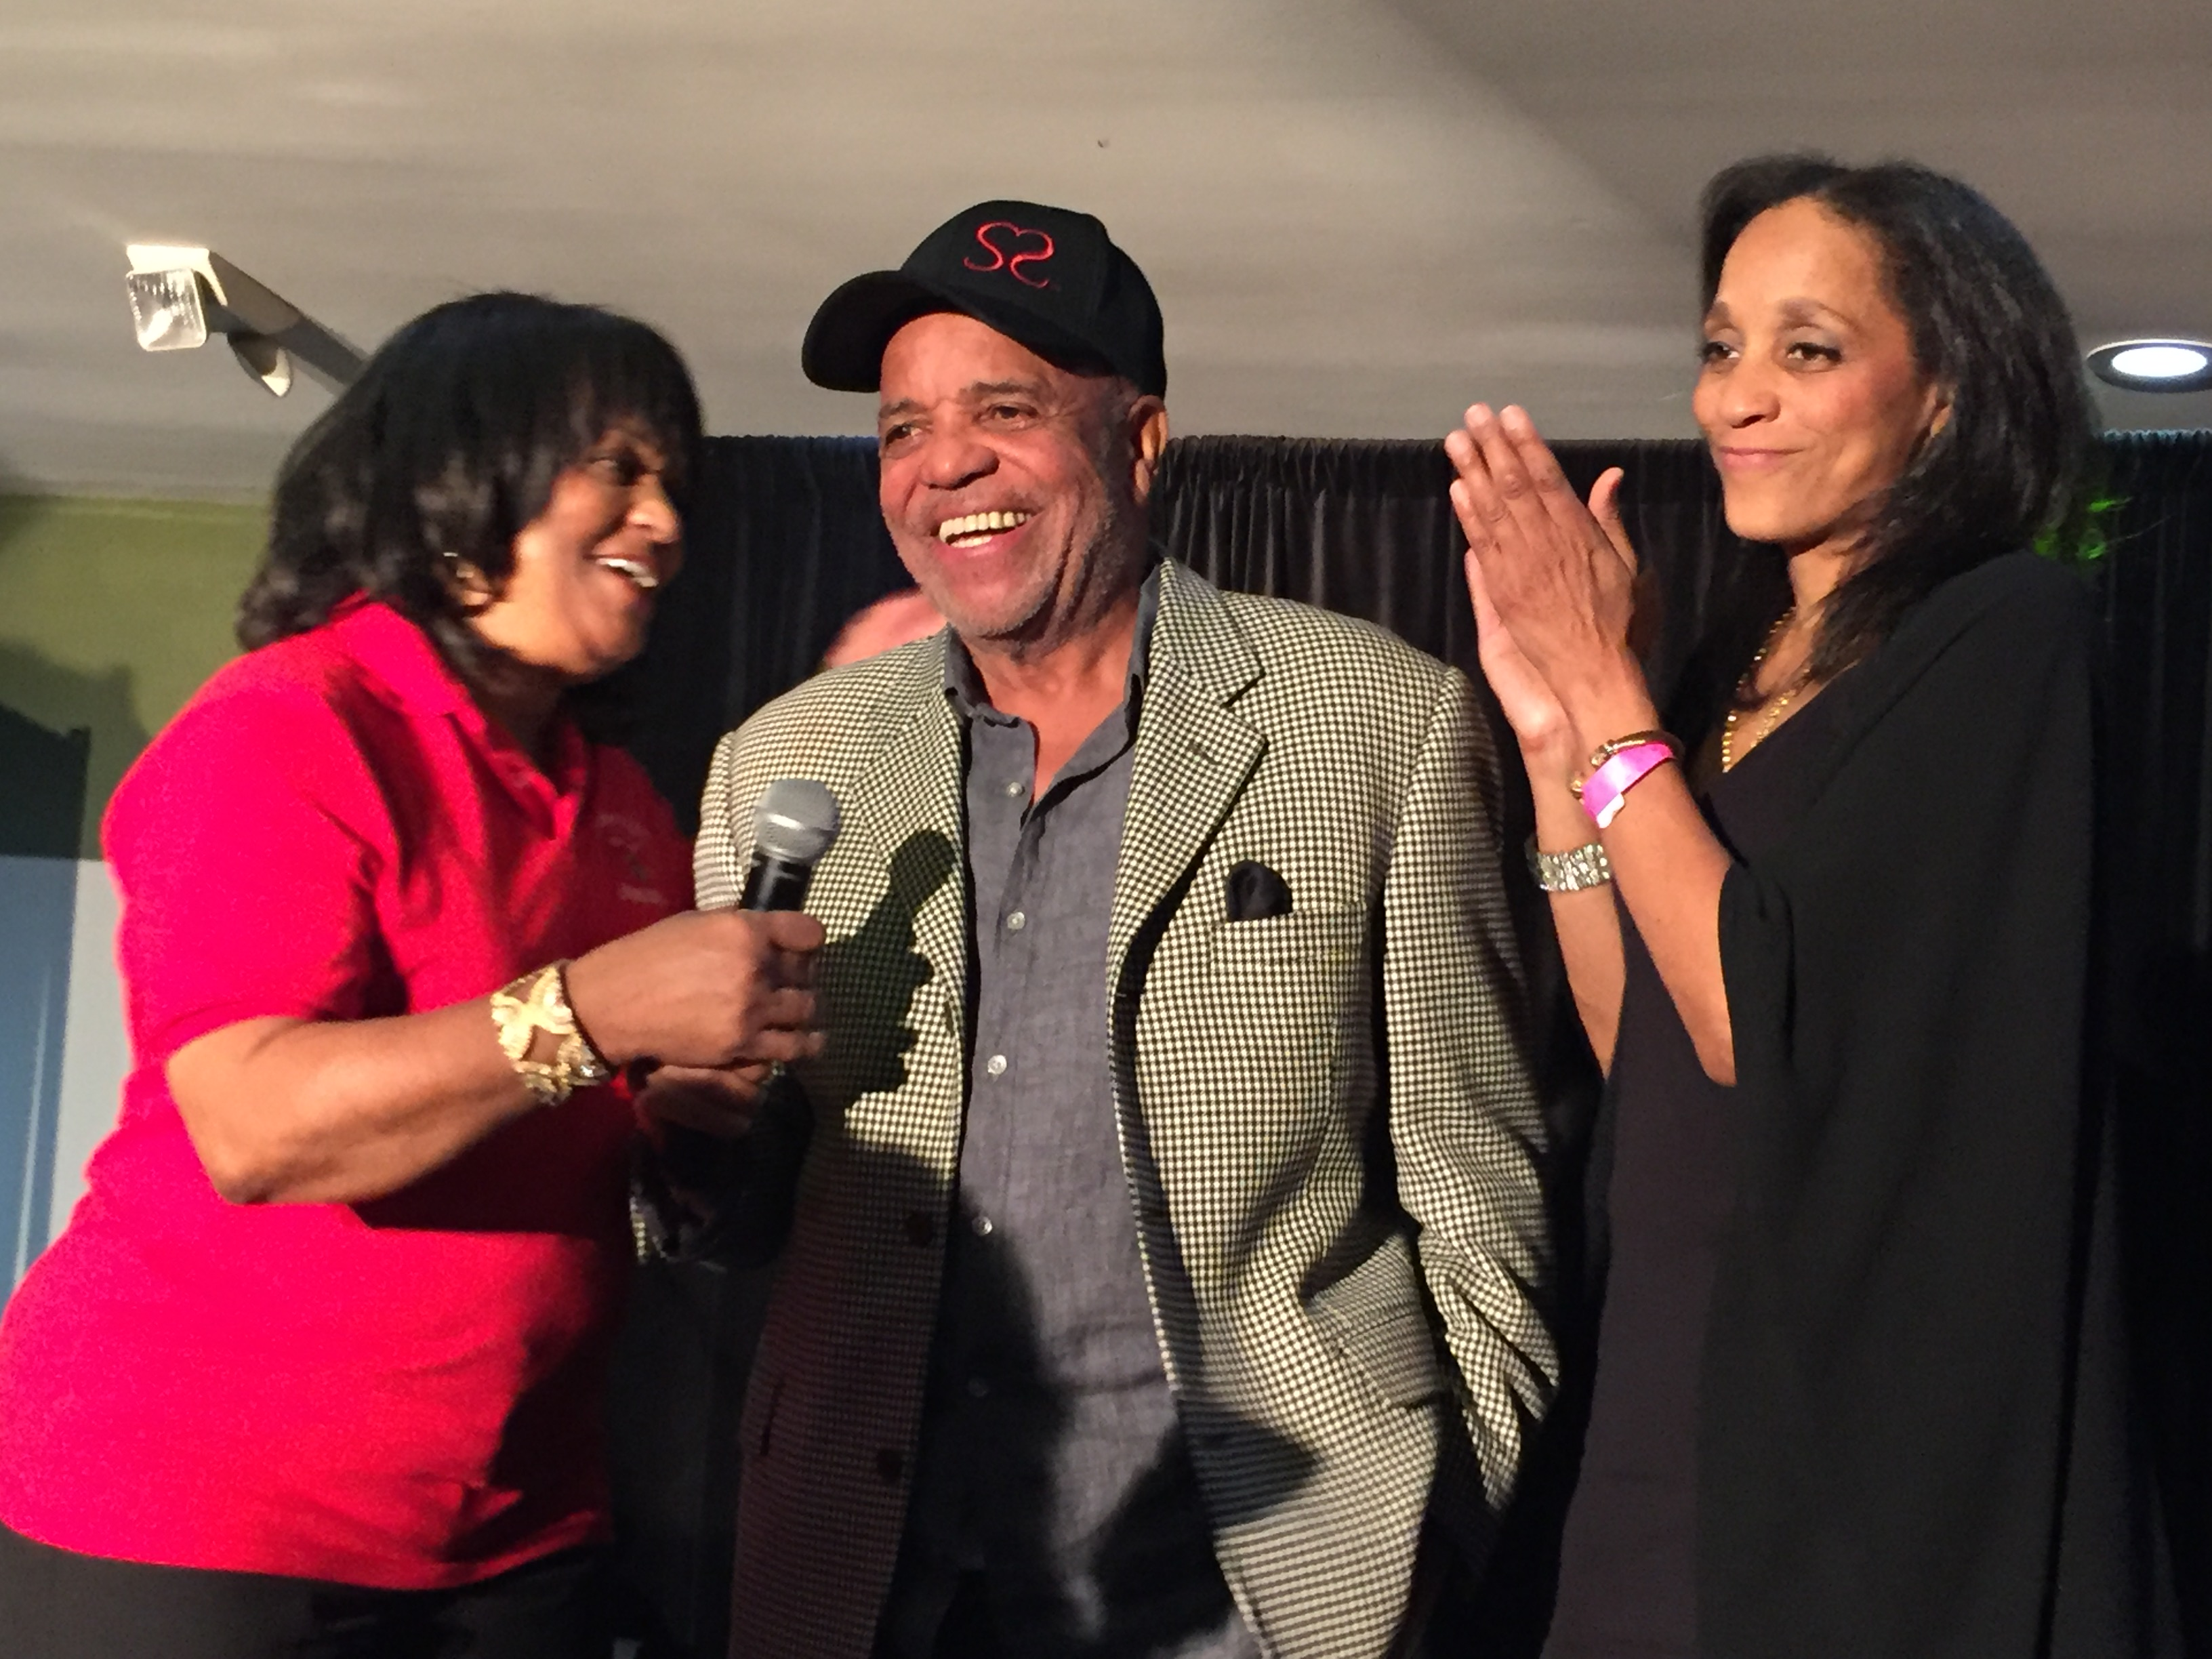 Gordy Movie Cast intended for berry gordy and 'motown alumni' show for fuller b. gordy strikefest